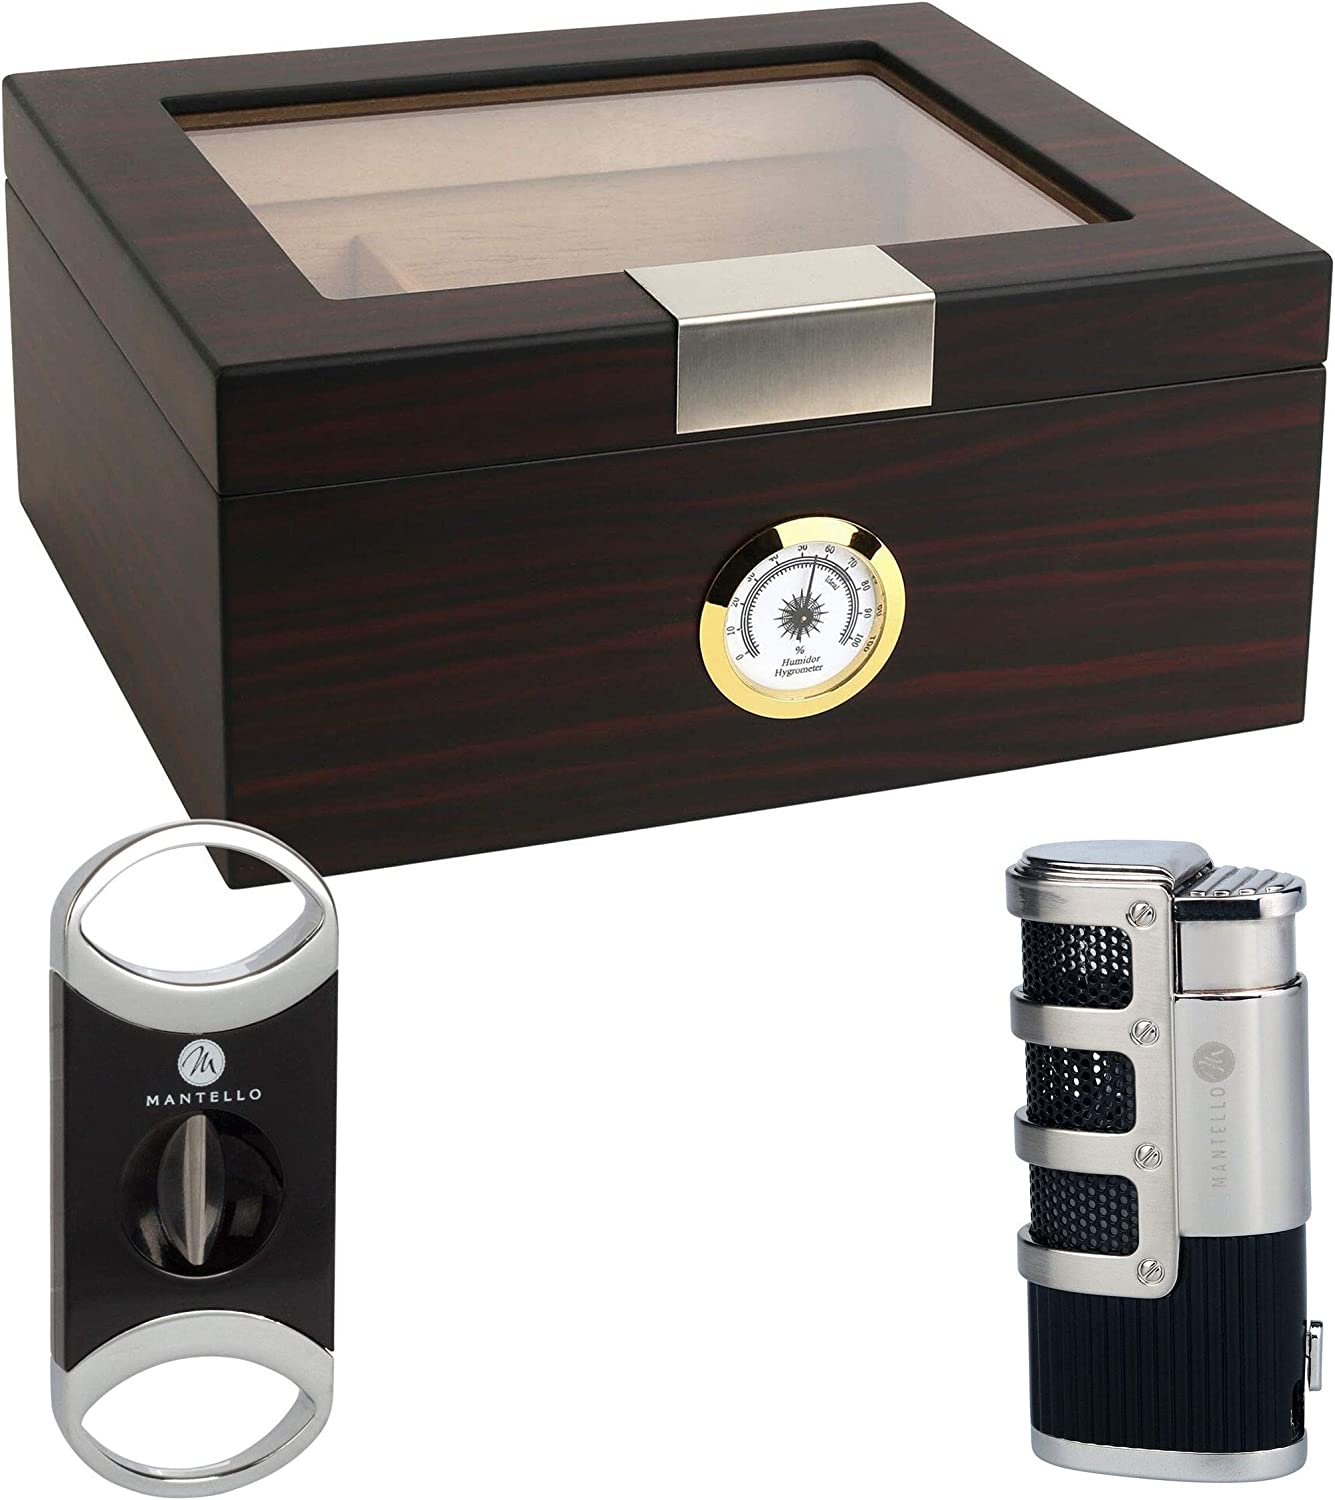 Mantello Ebony Glass -Top Cigar Humidor Humidifier Box - Holds (25-50 Cigars) Bundle Gift Set with V-Cut Cigar Cutter and Catador Triple Jet Torch Lighter (3 Items)